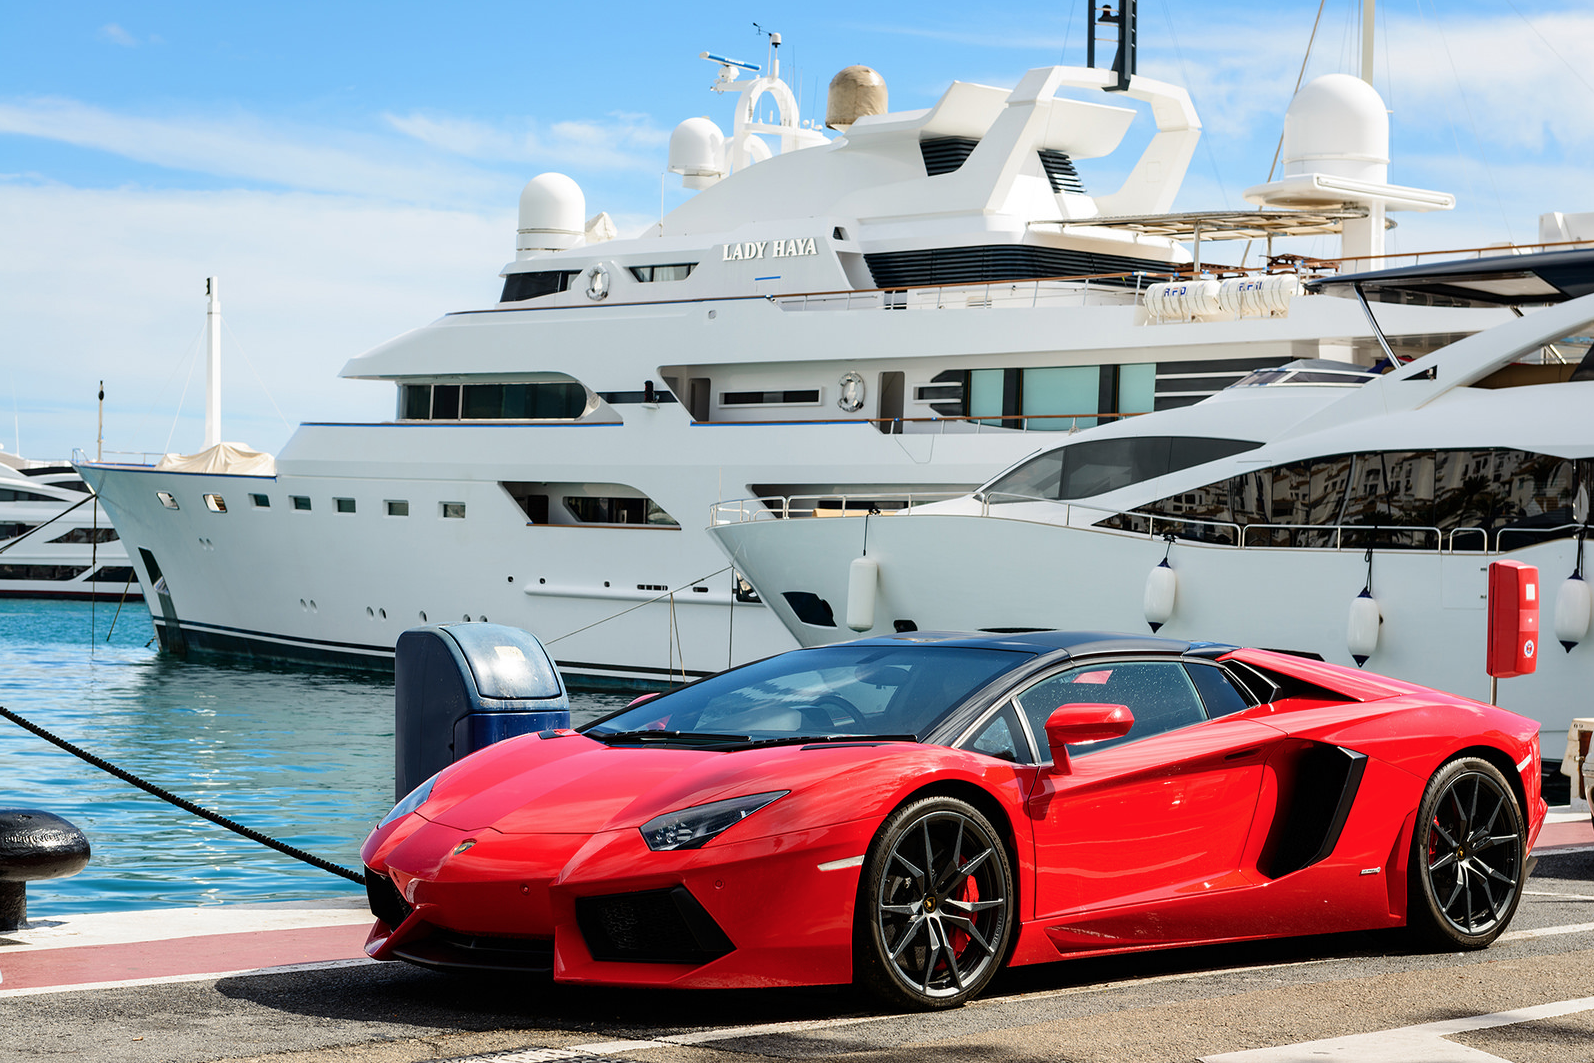 luxury-car-puerto banus.png